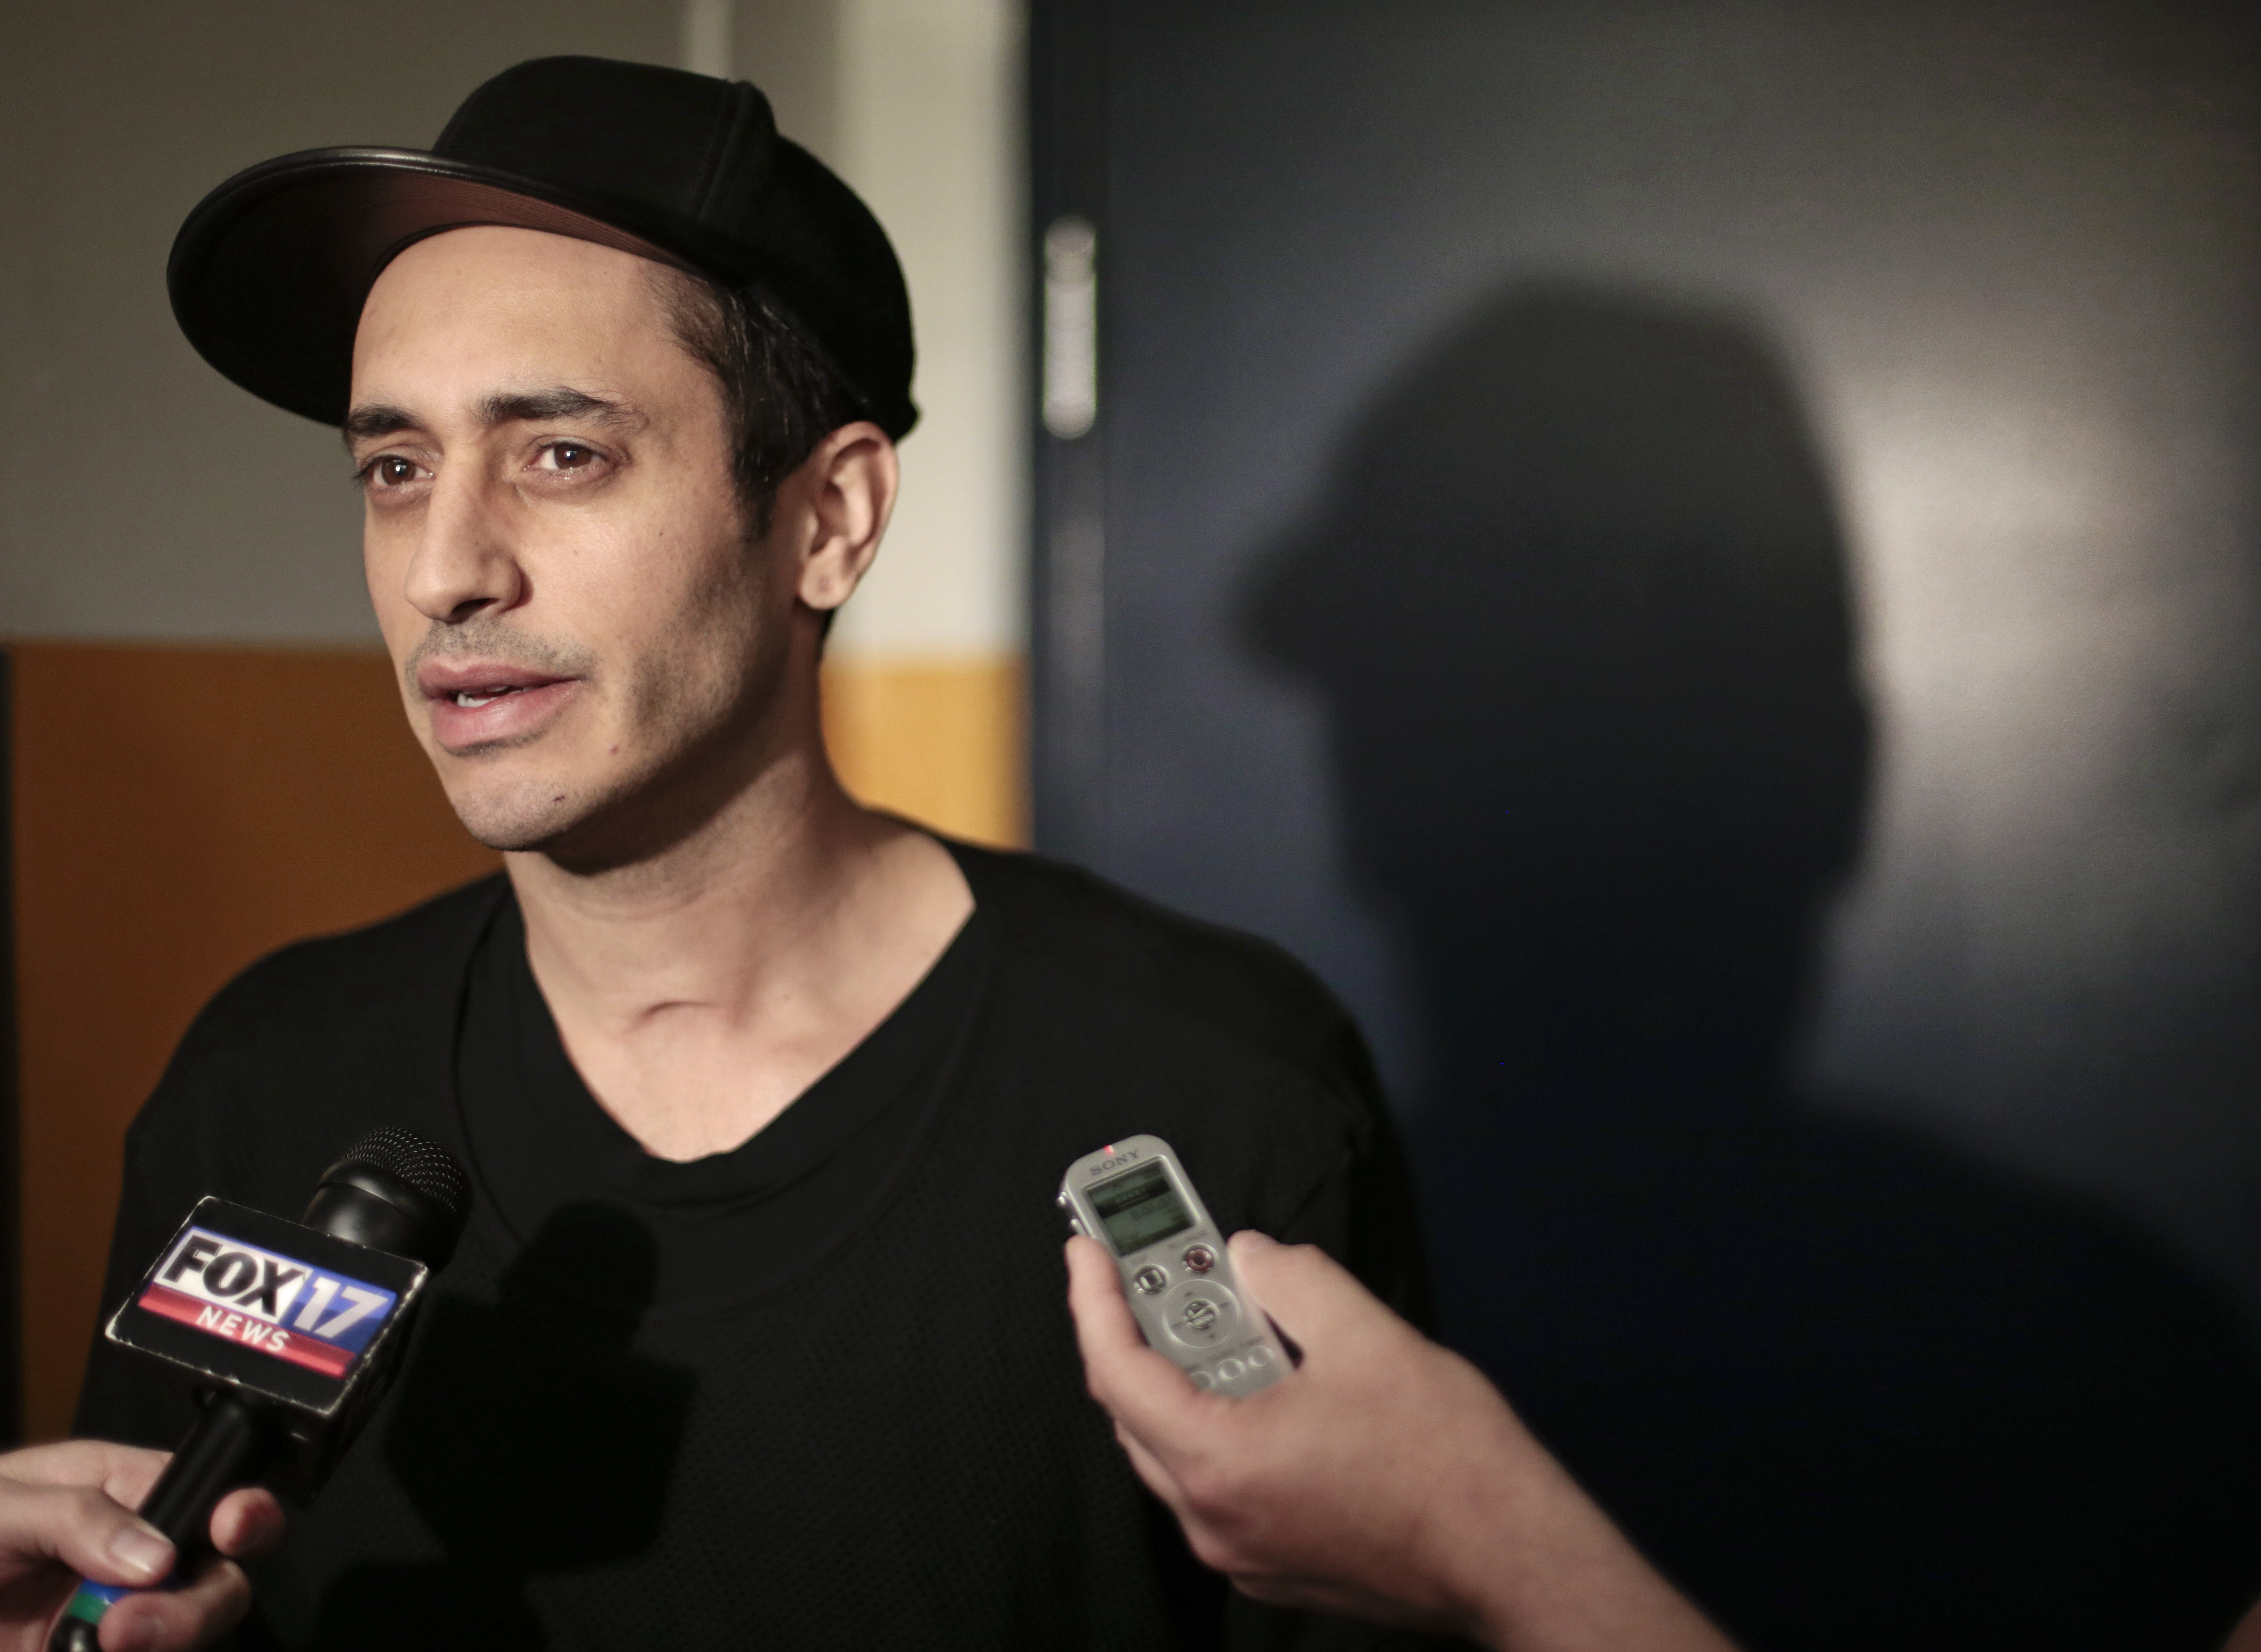 Nashville Predators center Mike Ribeiro talks with reporters Monday, April 27, 2015, in Nashville, Tenn. Although the Predators rebounded after missing the playoffs the past two years, they lost the opening round of the playoffs 4-2 to the Chicago Blackha